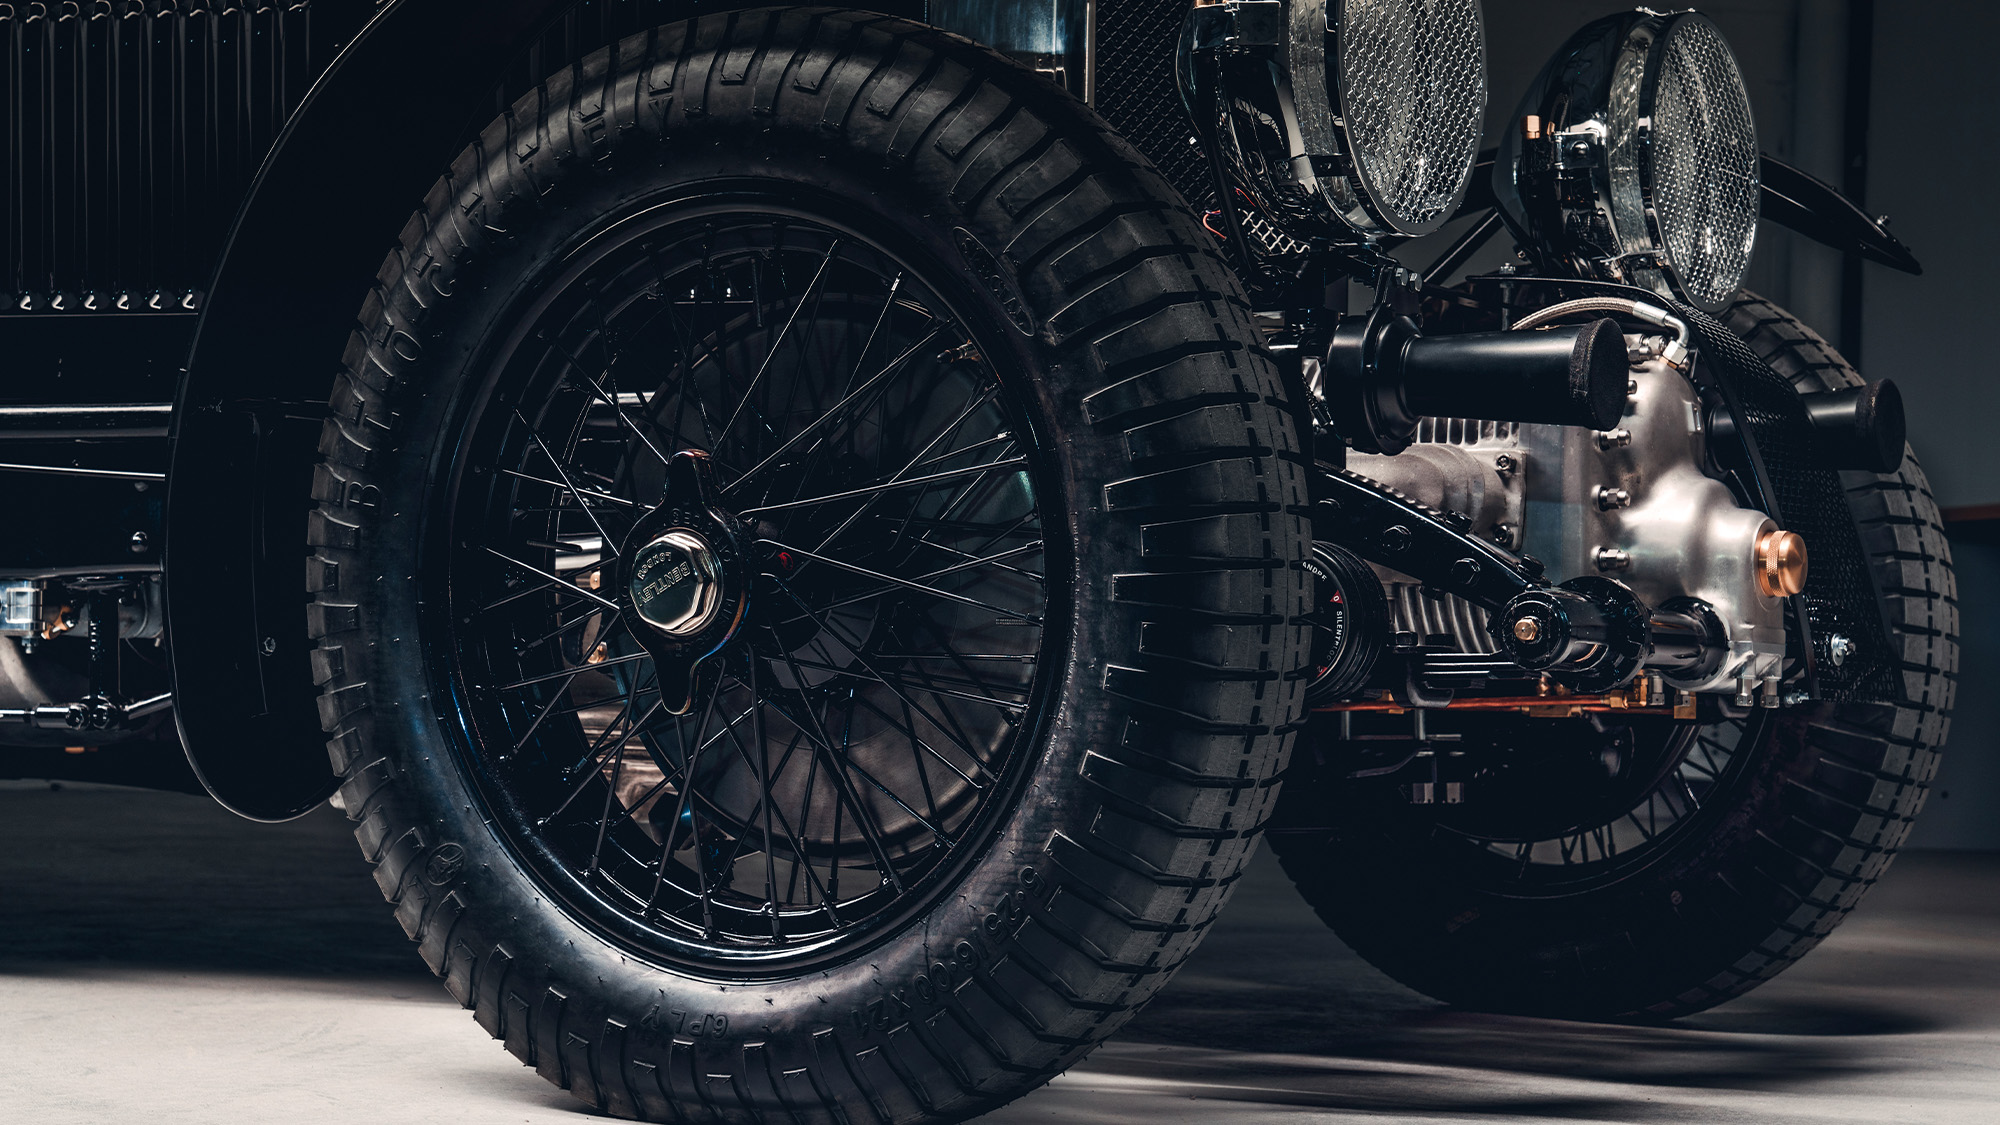 Bentley Blower Continuation wheels